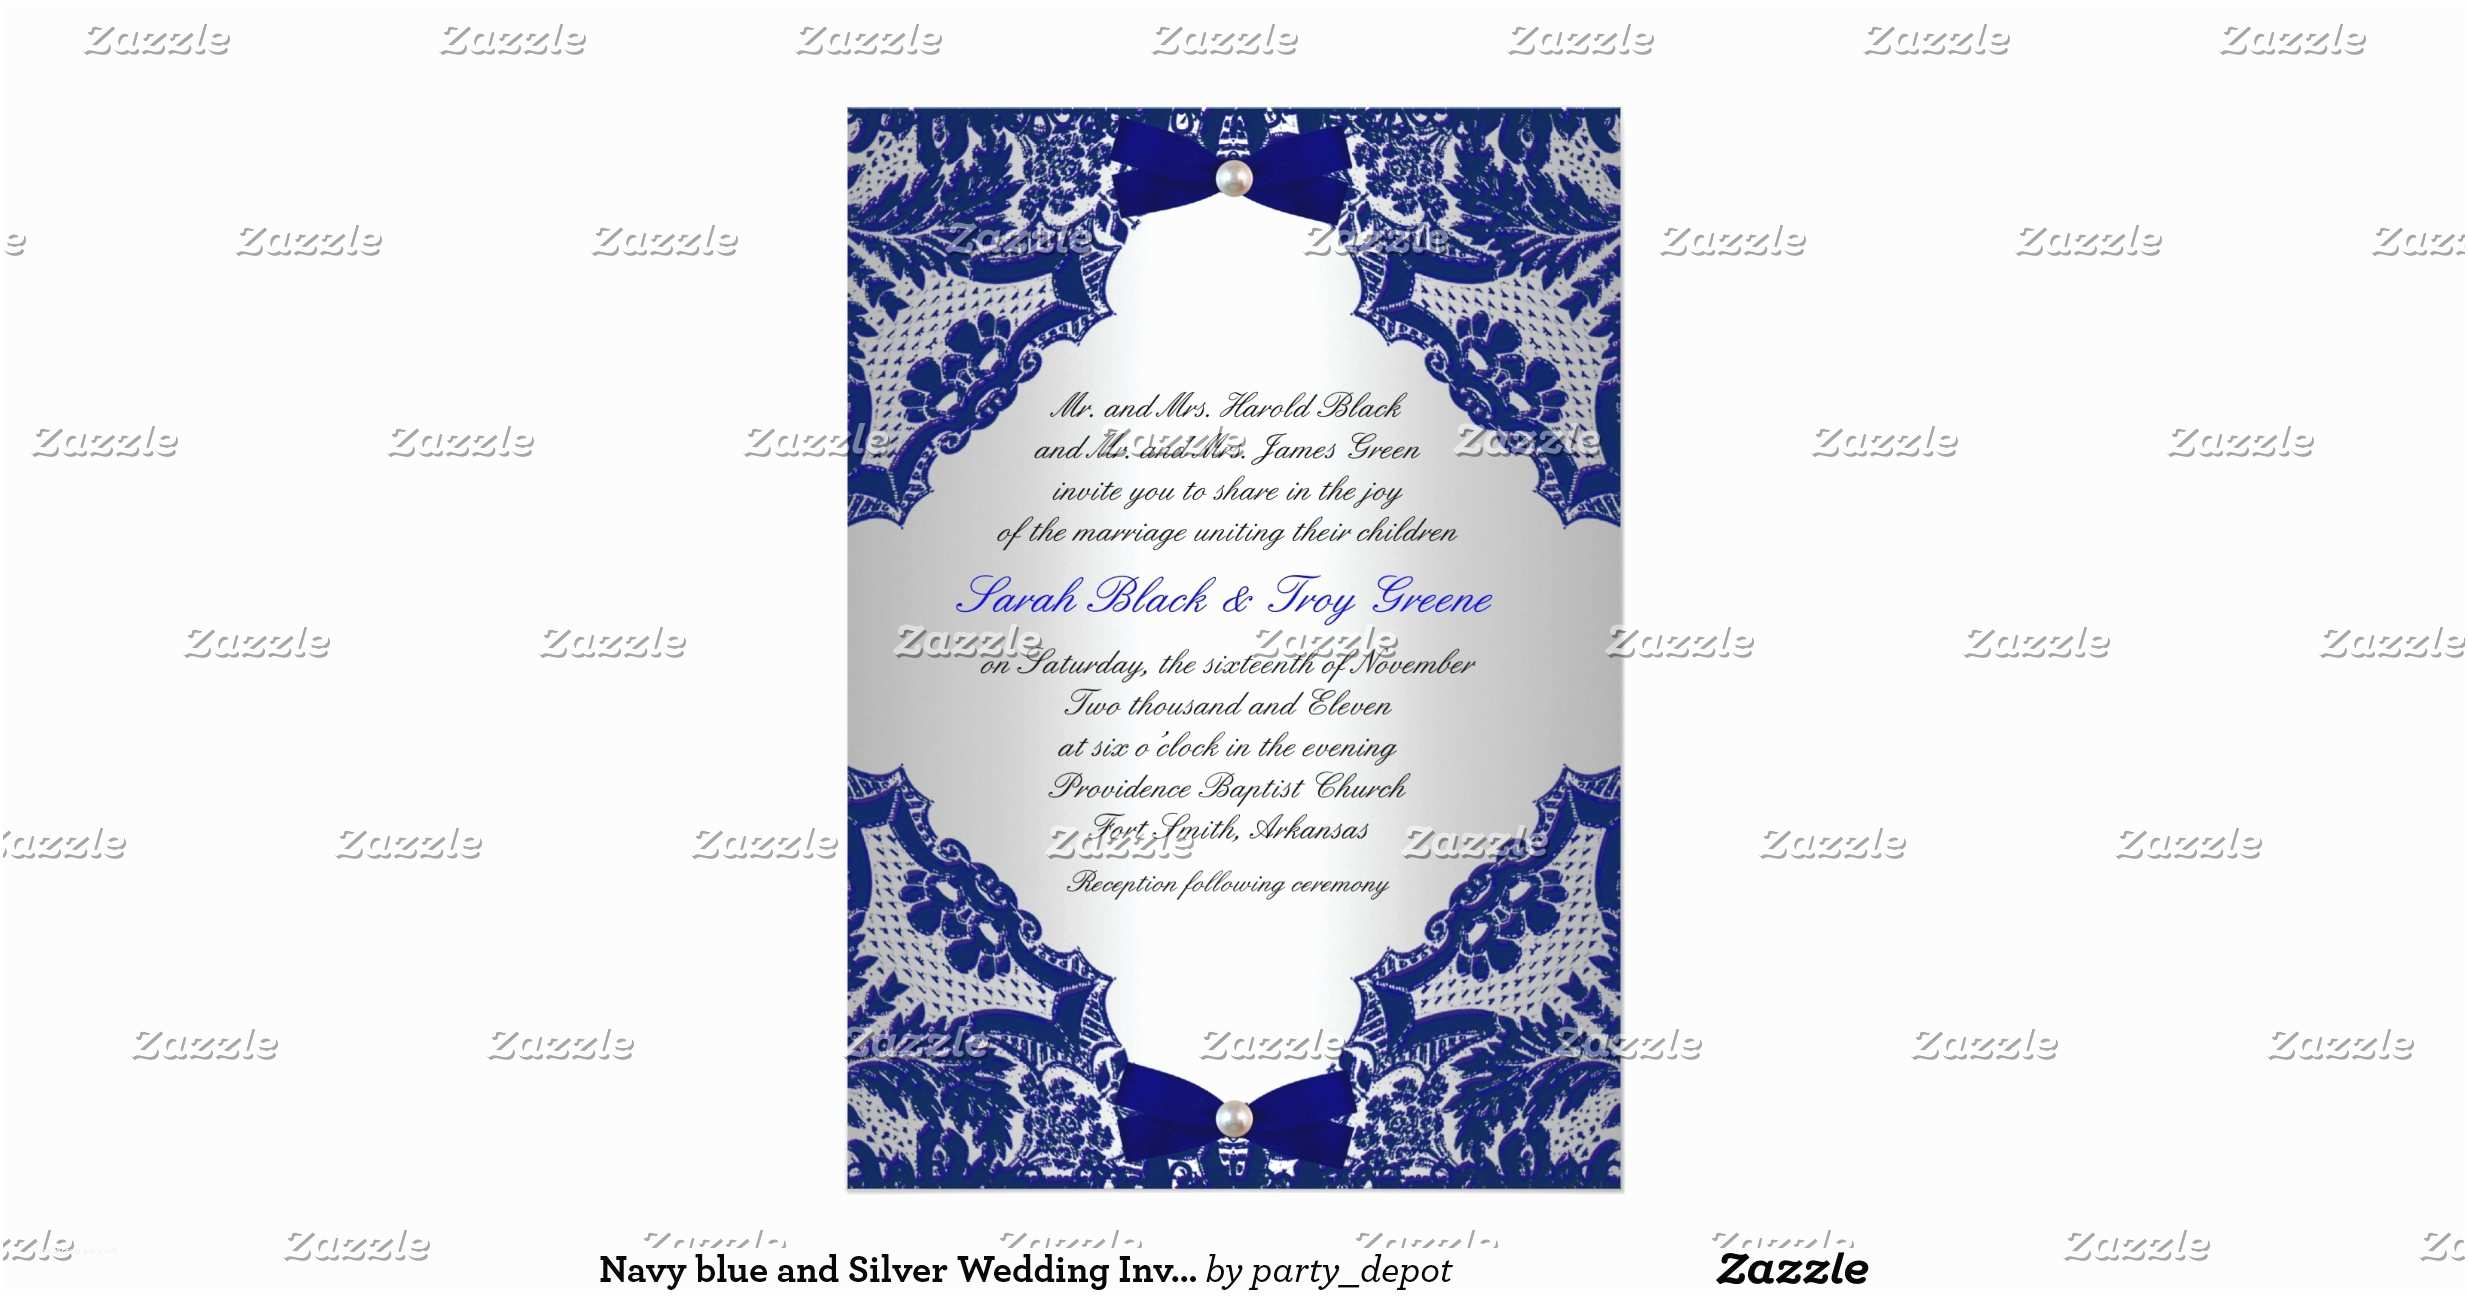 Blue and Silver Wedding Invitations Navy Blue and Silver Wedding Invitation